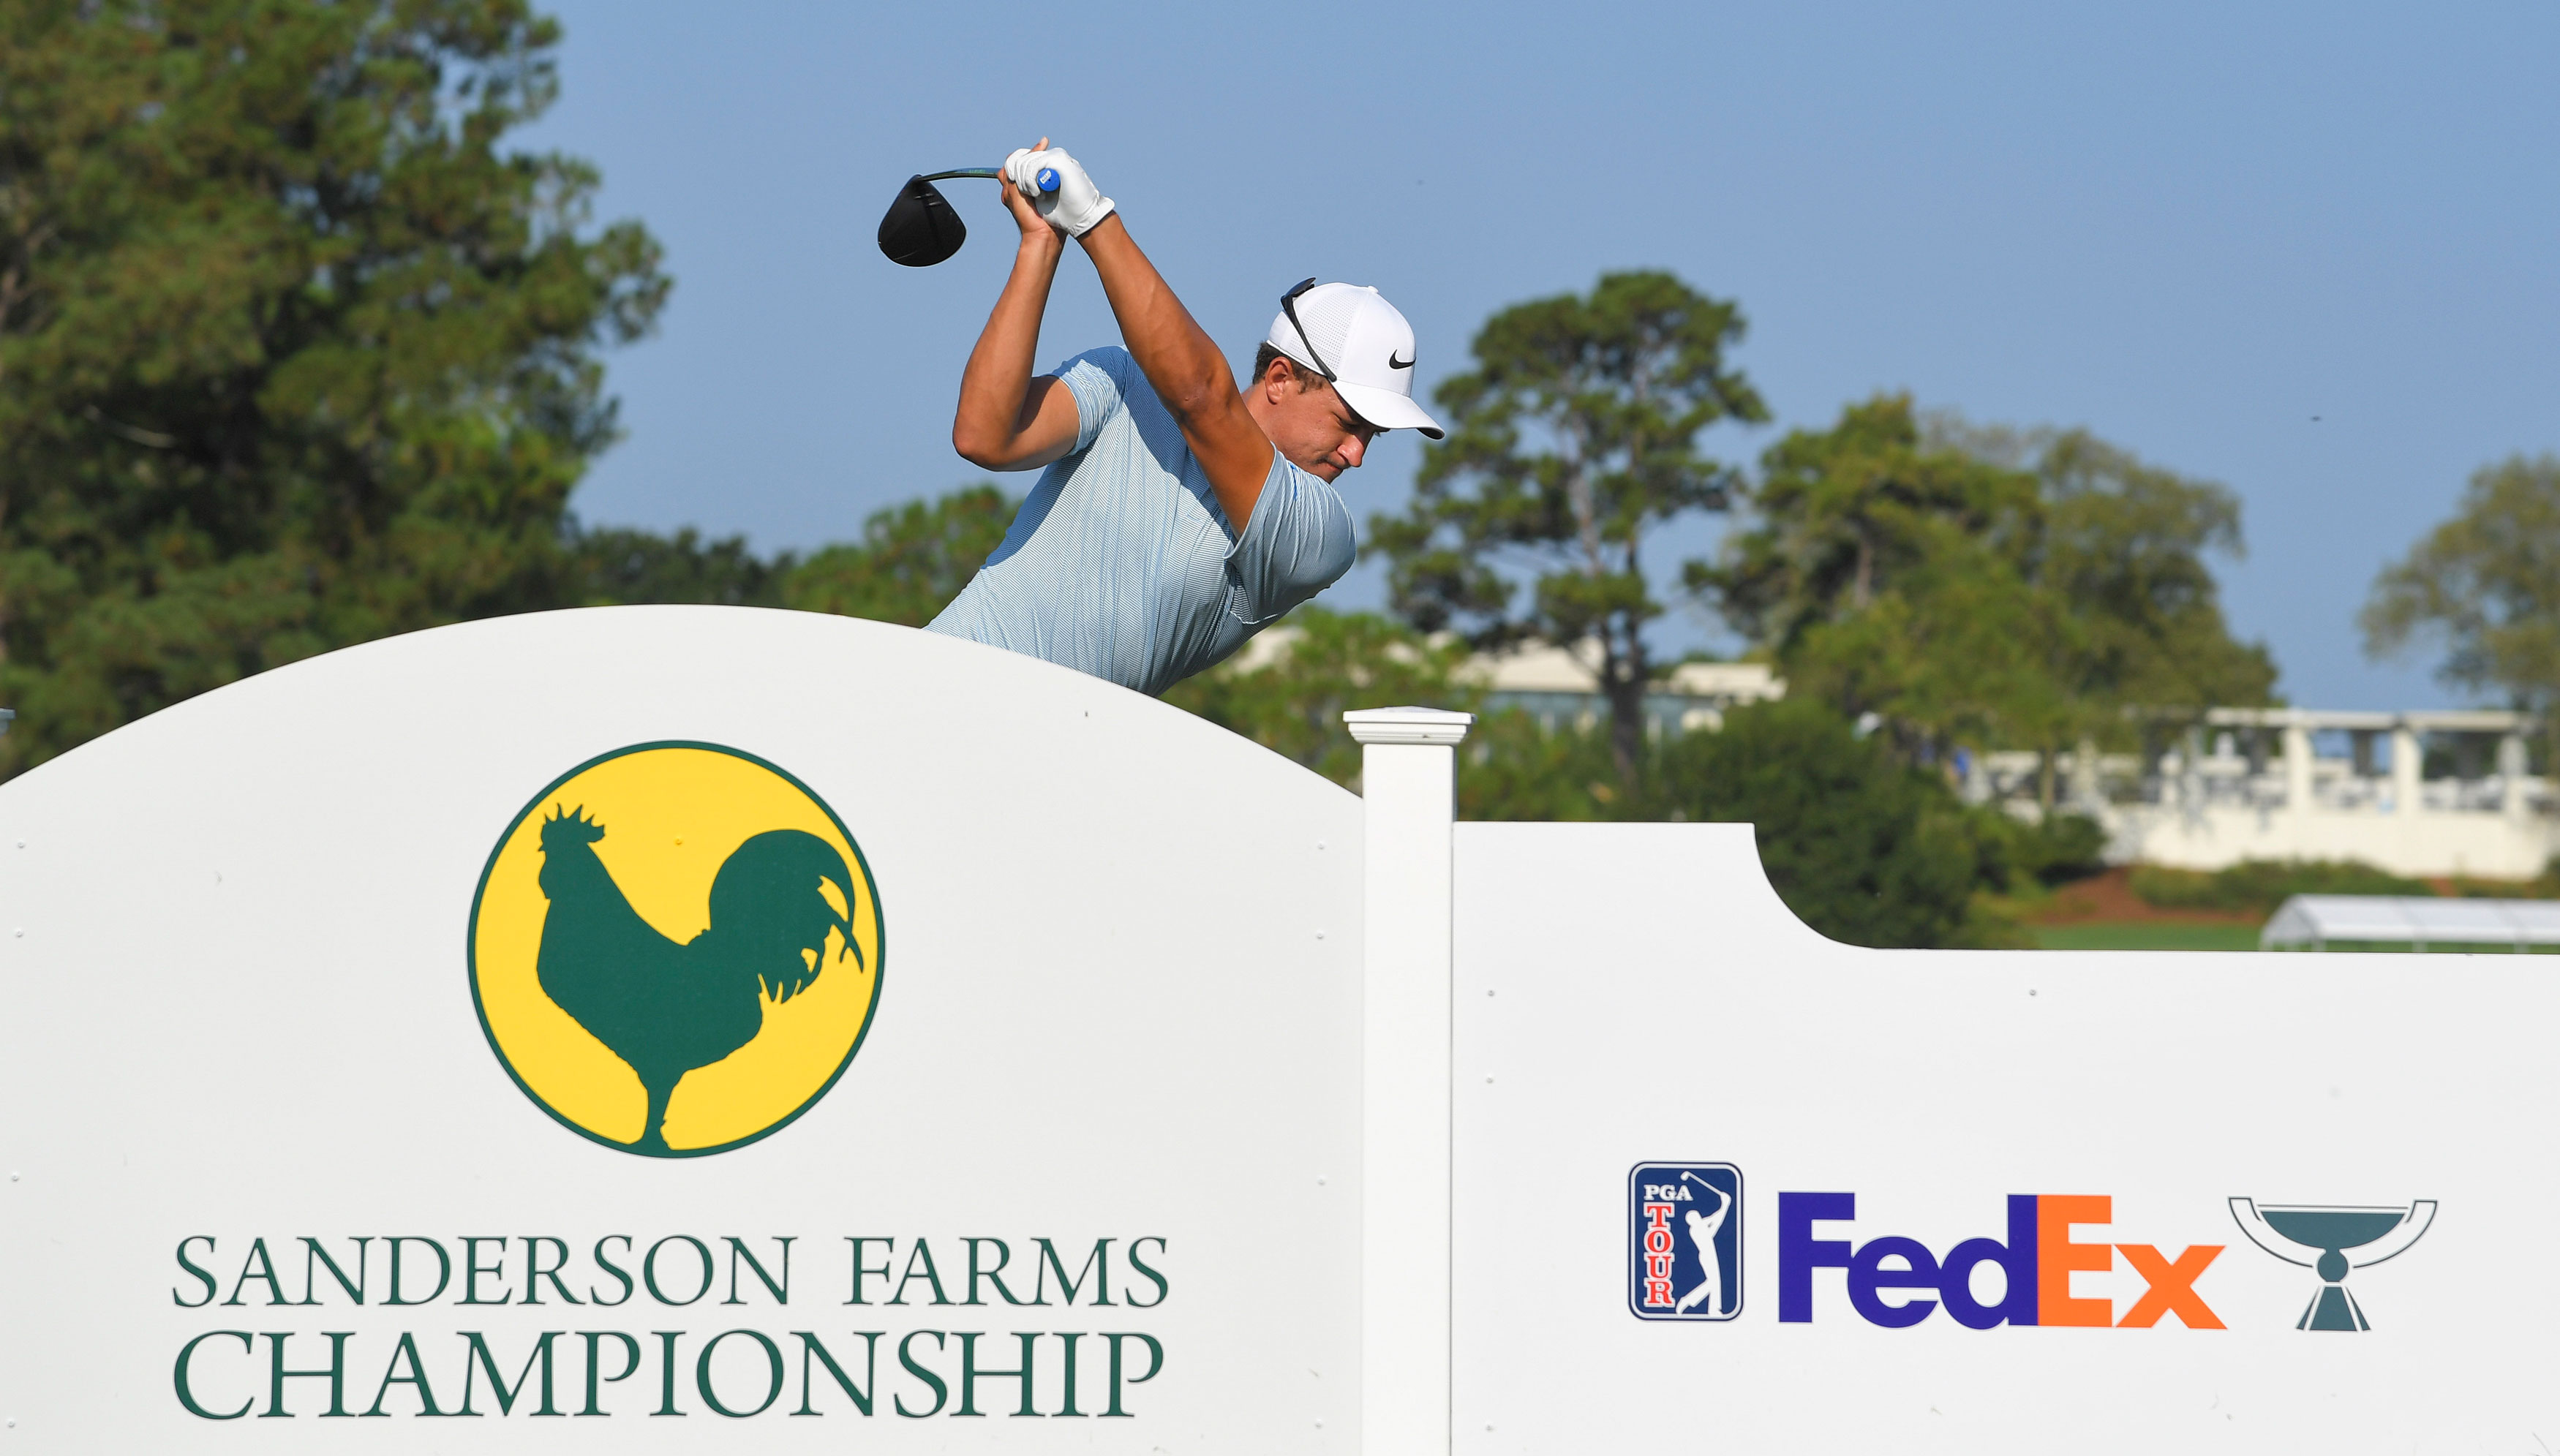 Here S The Prize Money Payout For Each Golfer At The 2019 Sanderson Farms Championship Golf News And Tour Information Golf Digest